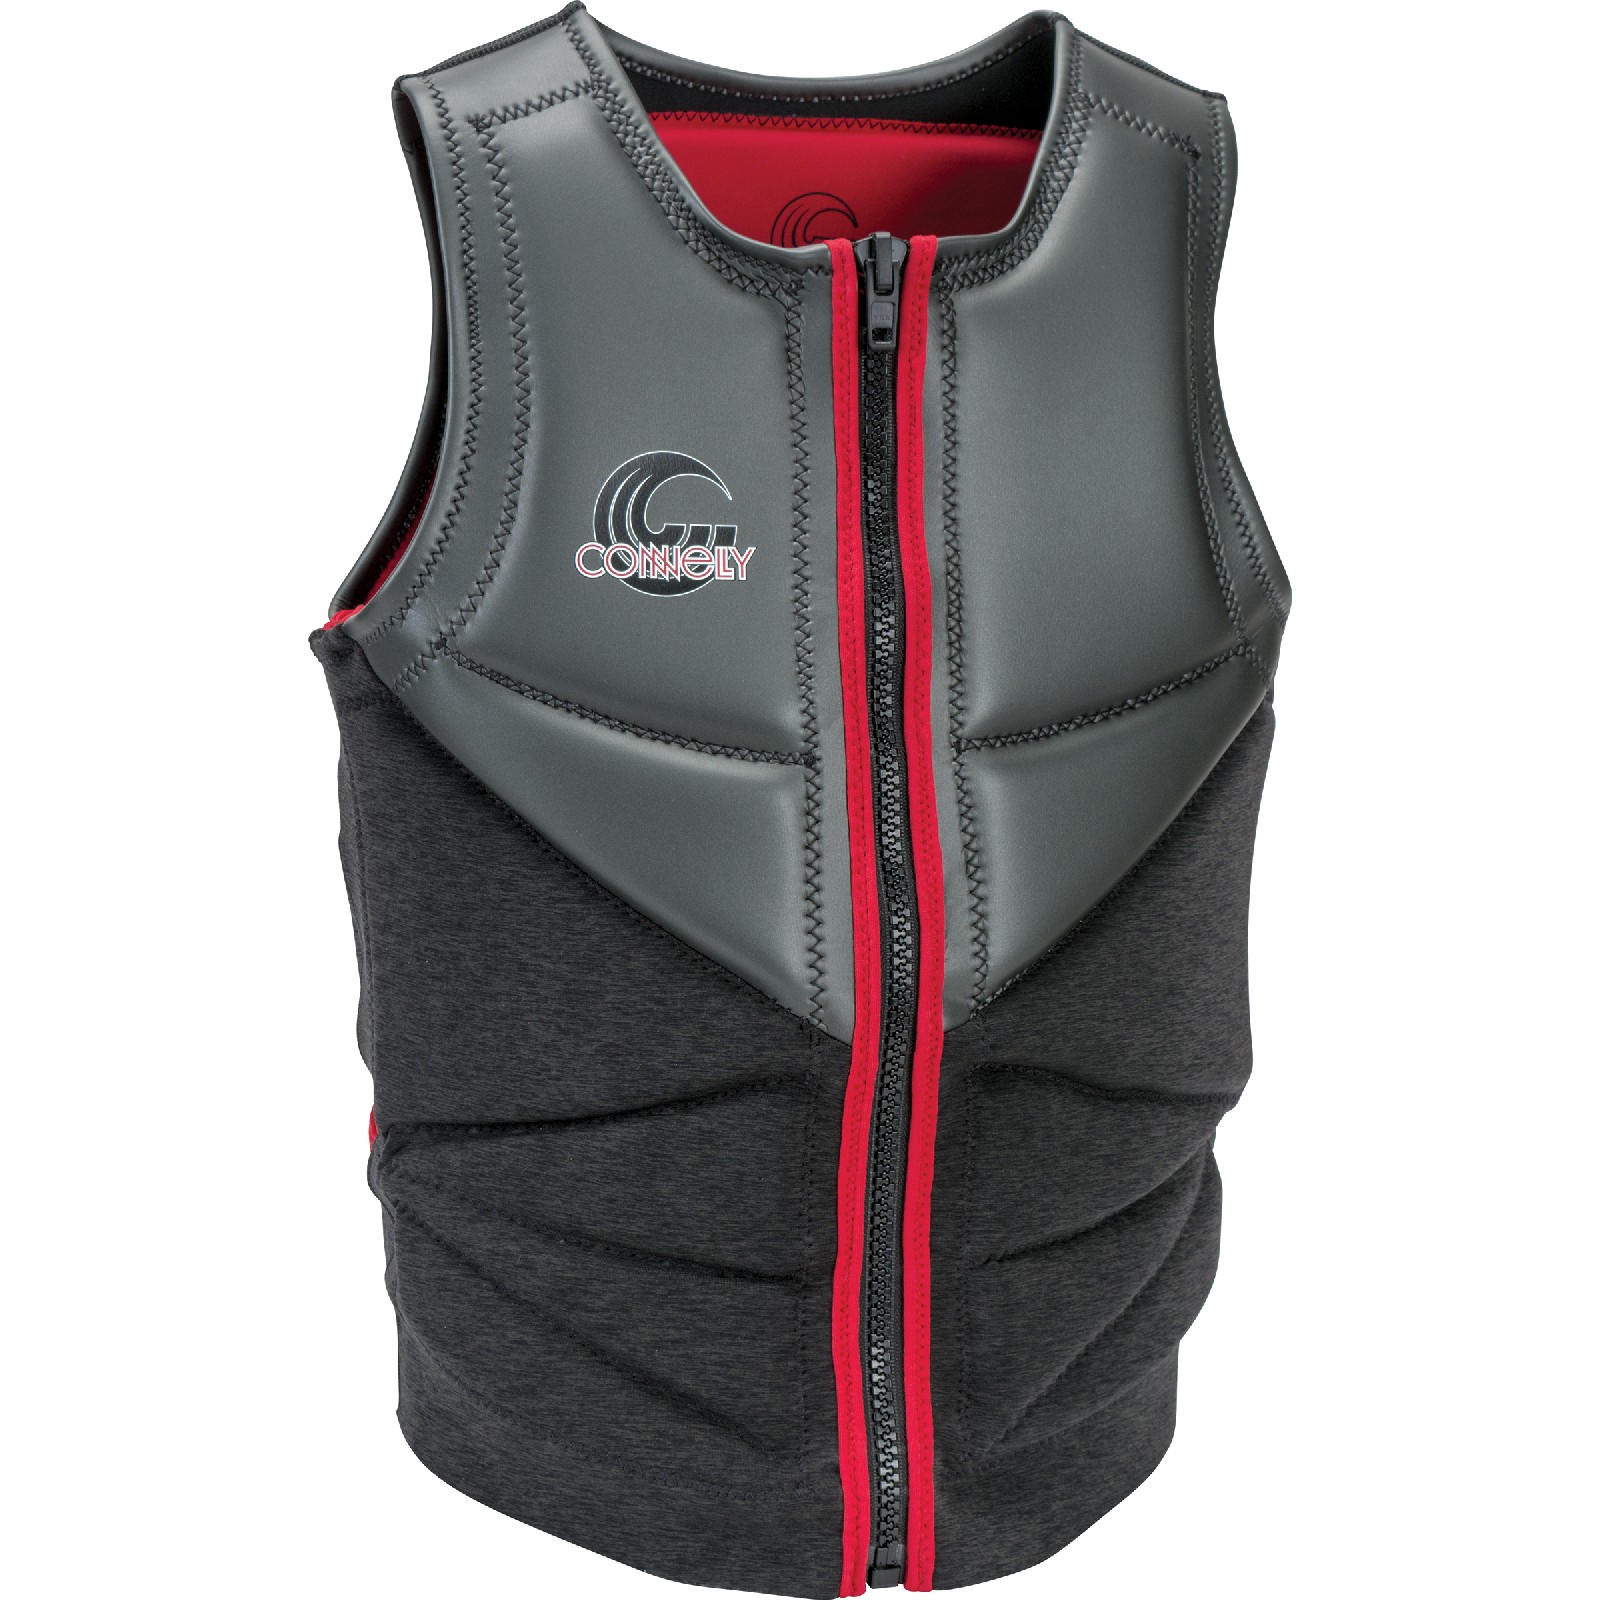 REVERB IMPACT VEST CONNELLY 2019